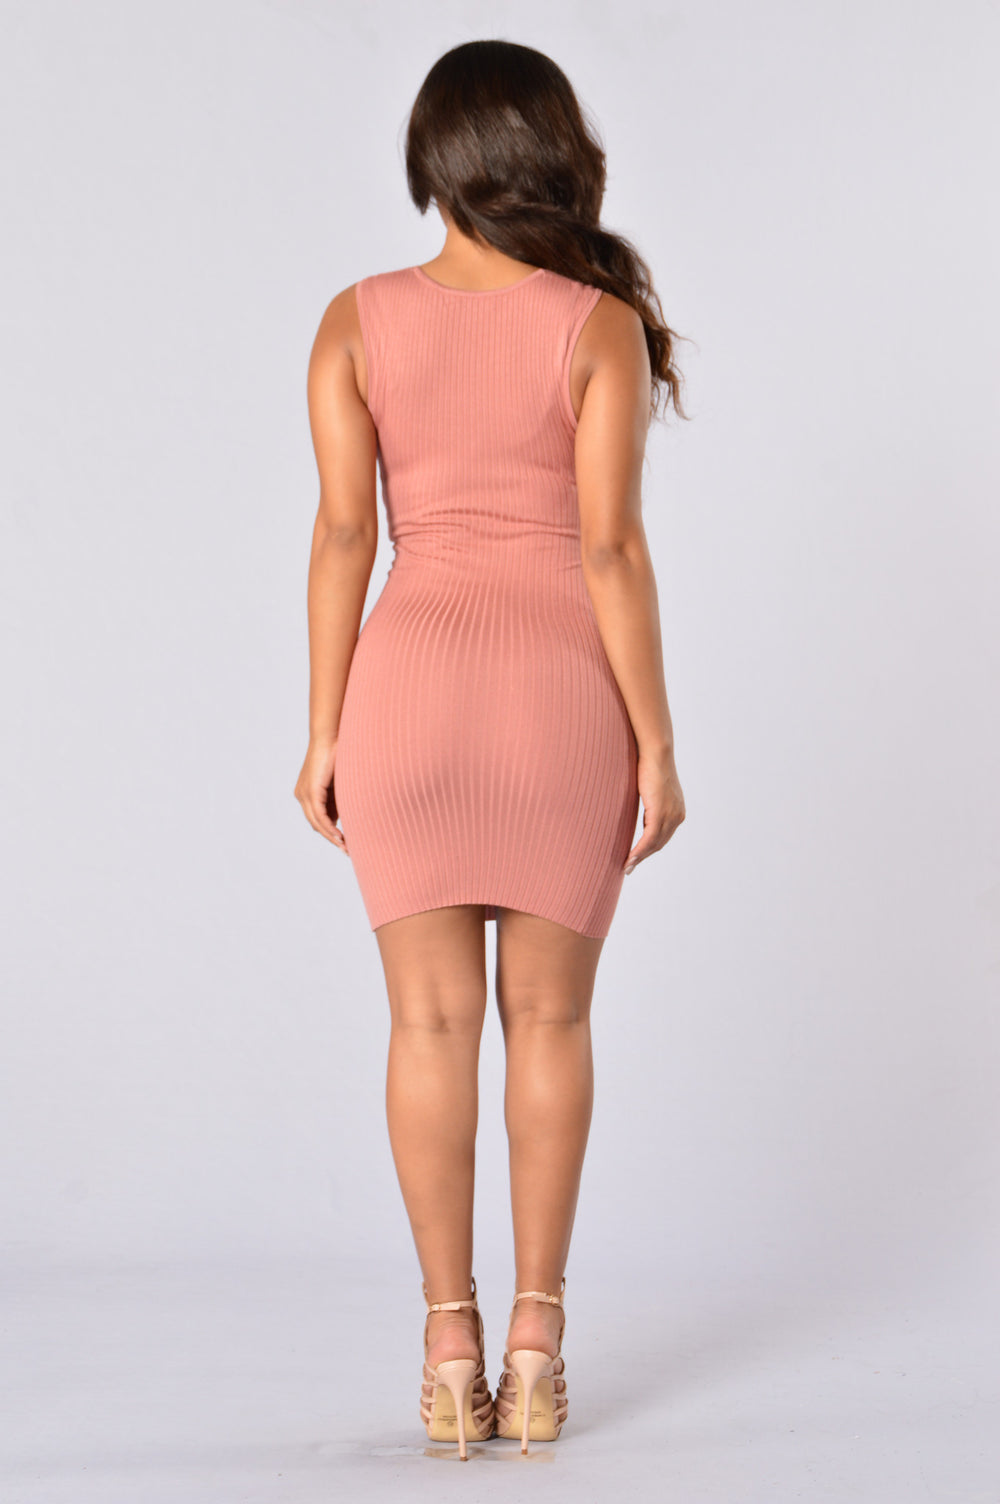 Cross Your Heart Dress - Salmon